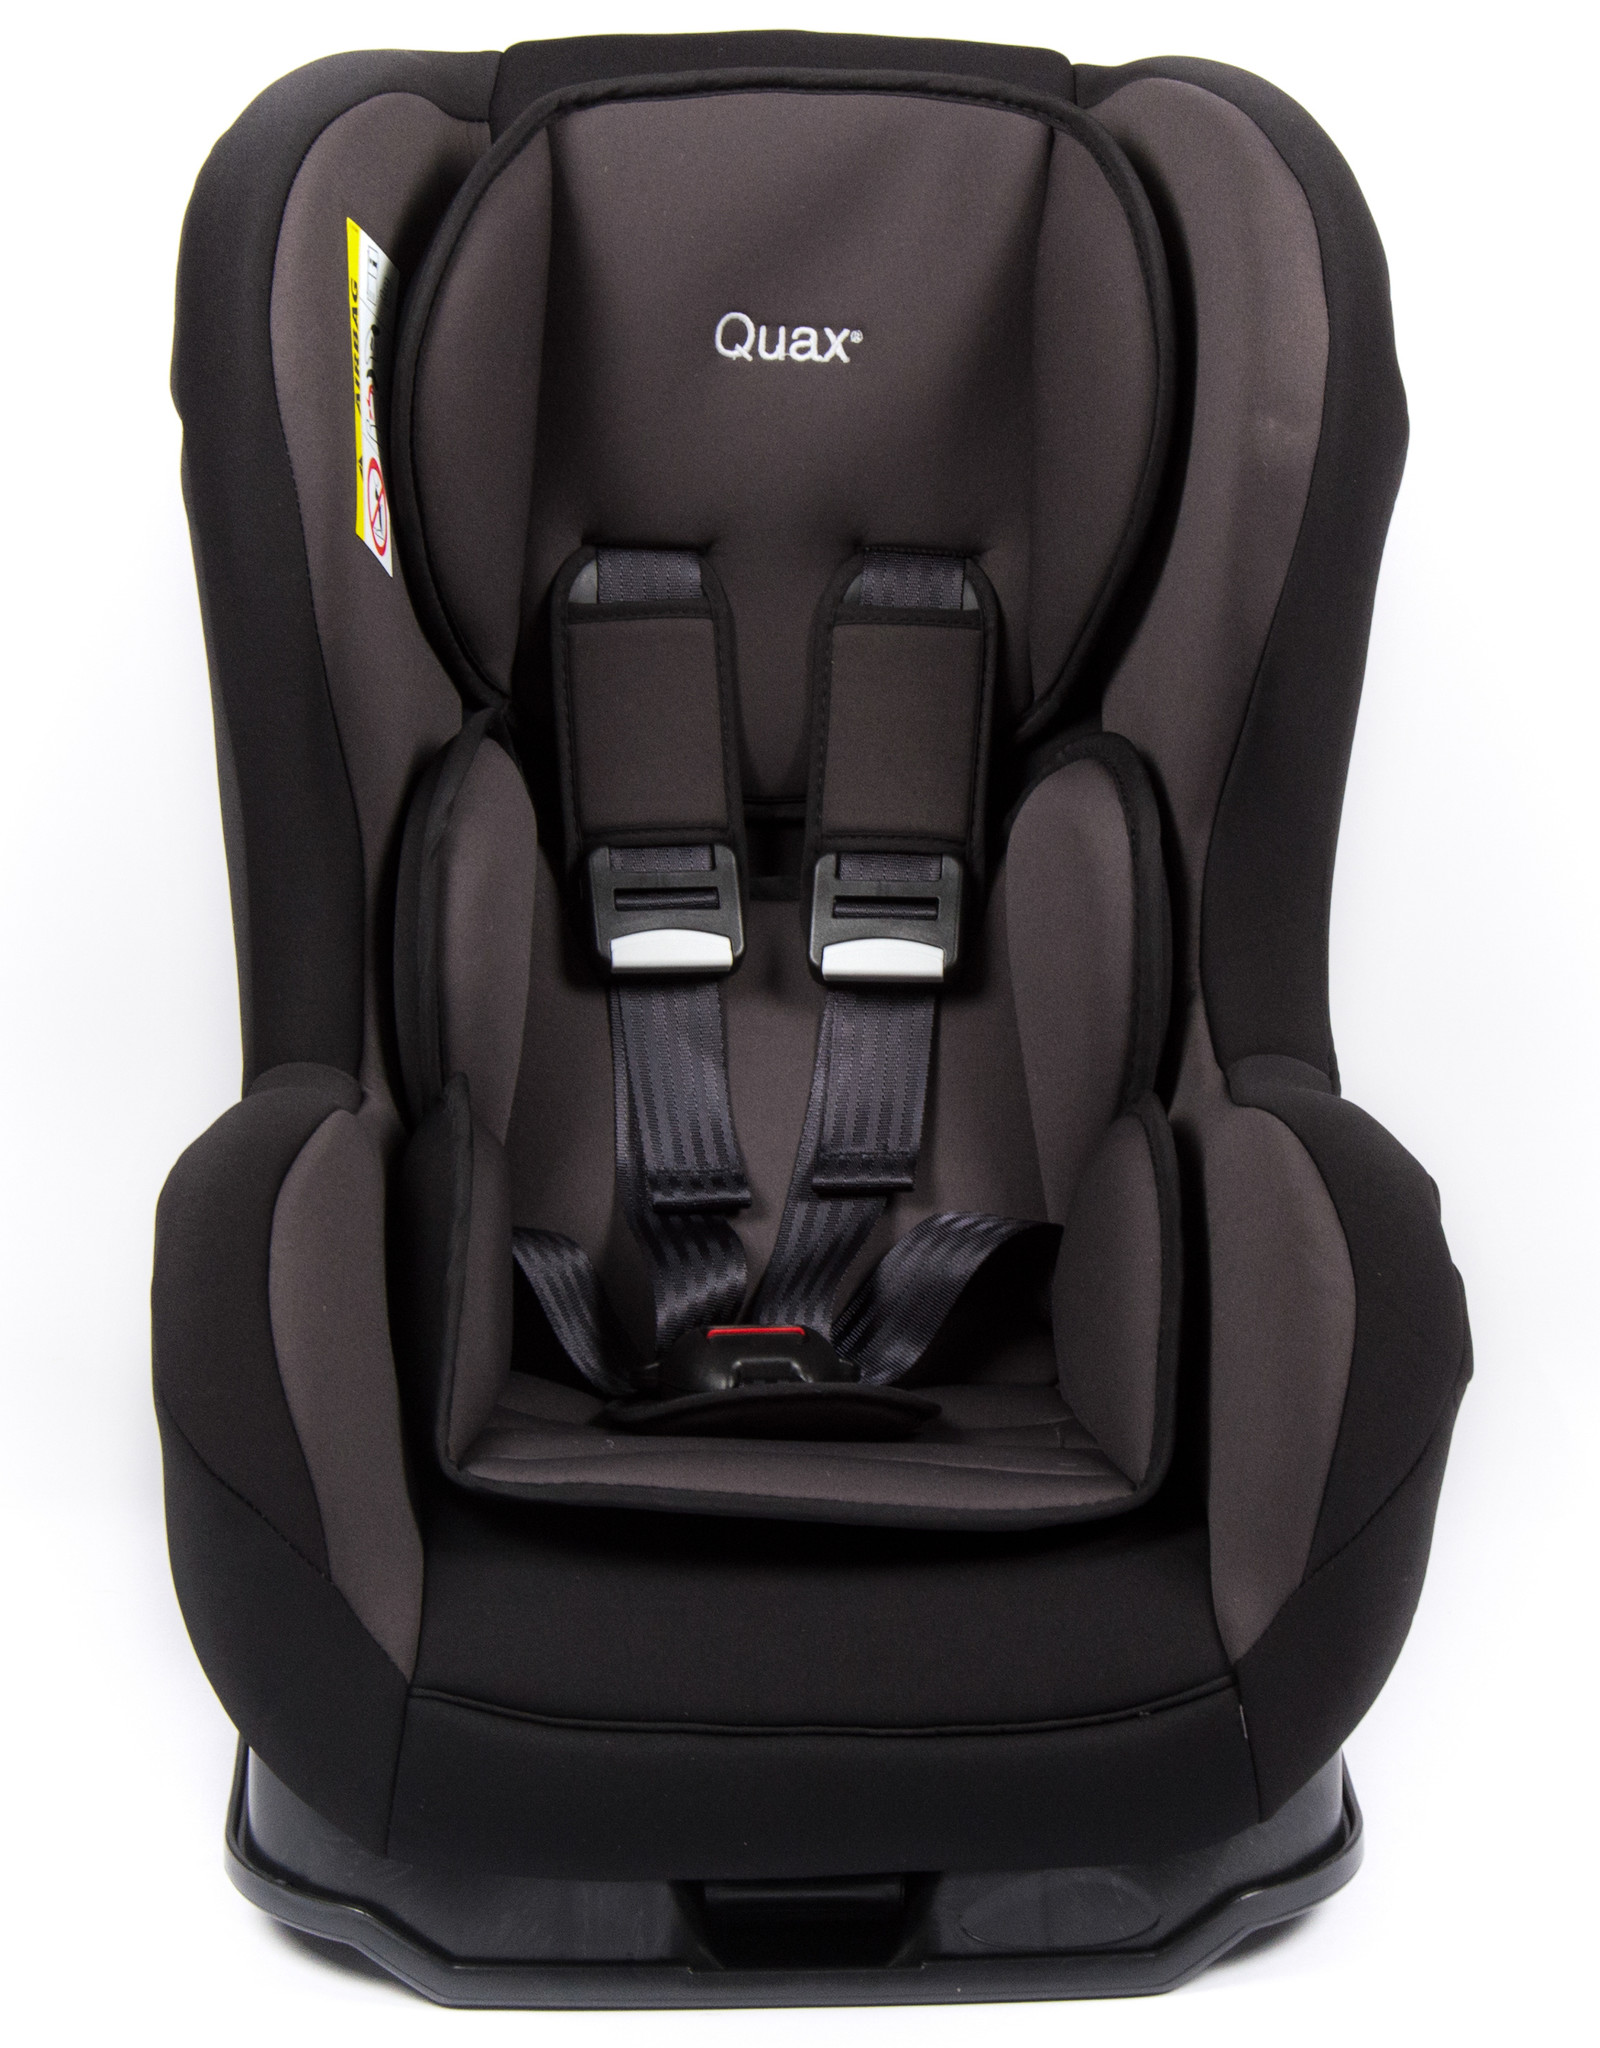 Quax Cosmo - Black - Group 0/1